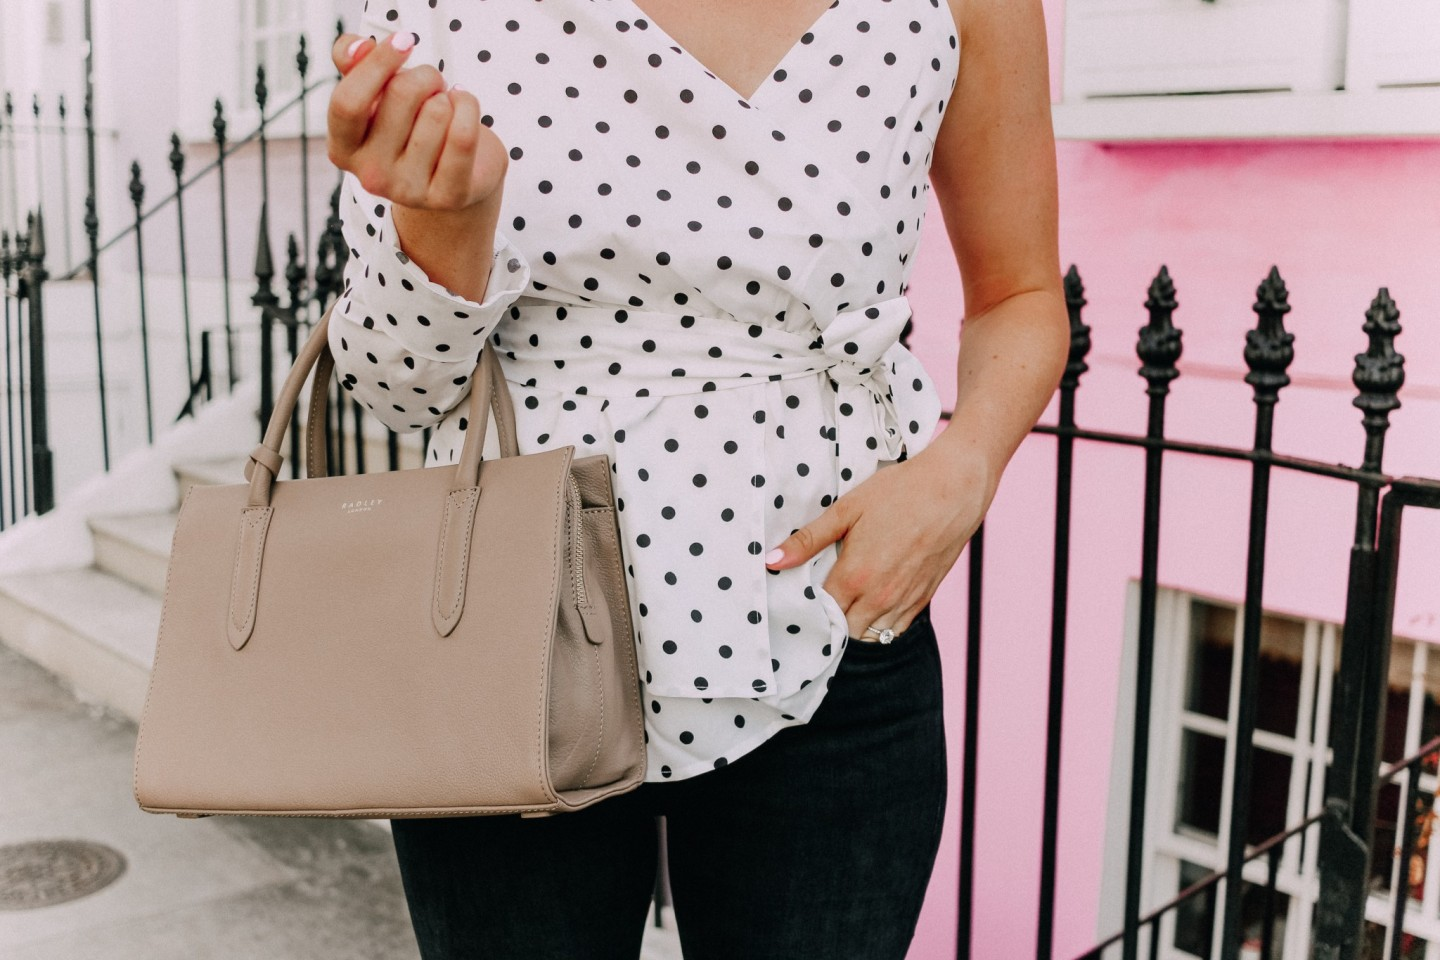 Radley London featured by popular London fashion blogger Mollie Moore